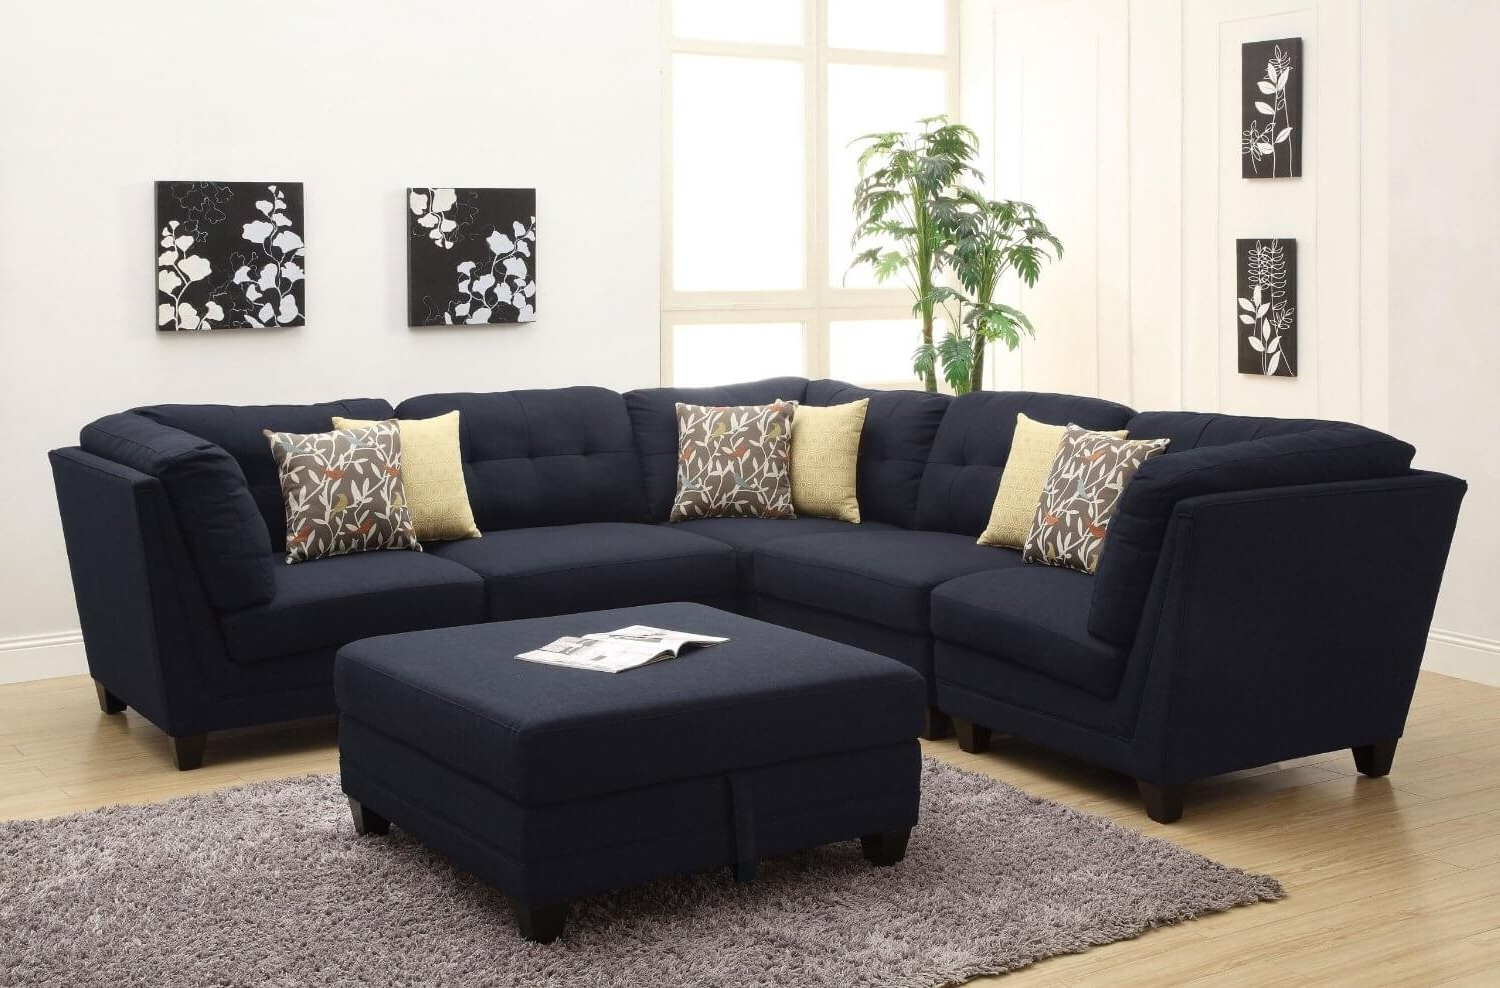 Eco Friendly Sectional Sofas Intended For Popular 100 Awesome Sectional Sofas Under $1,000 (2018) (View 12 of 15)